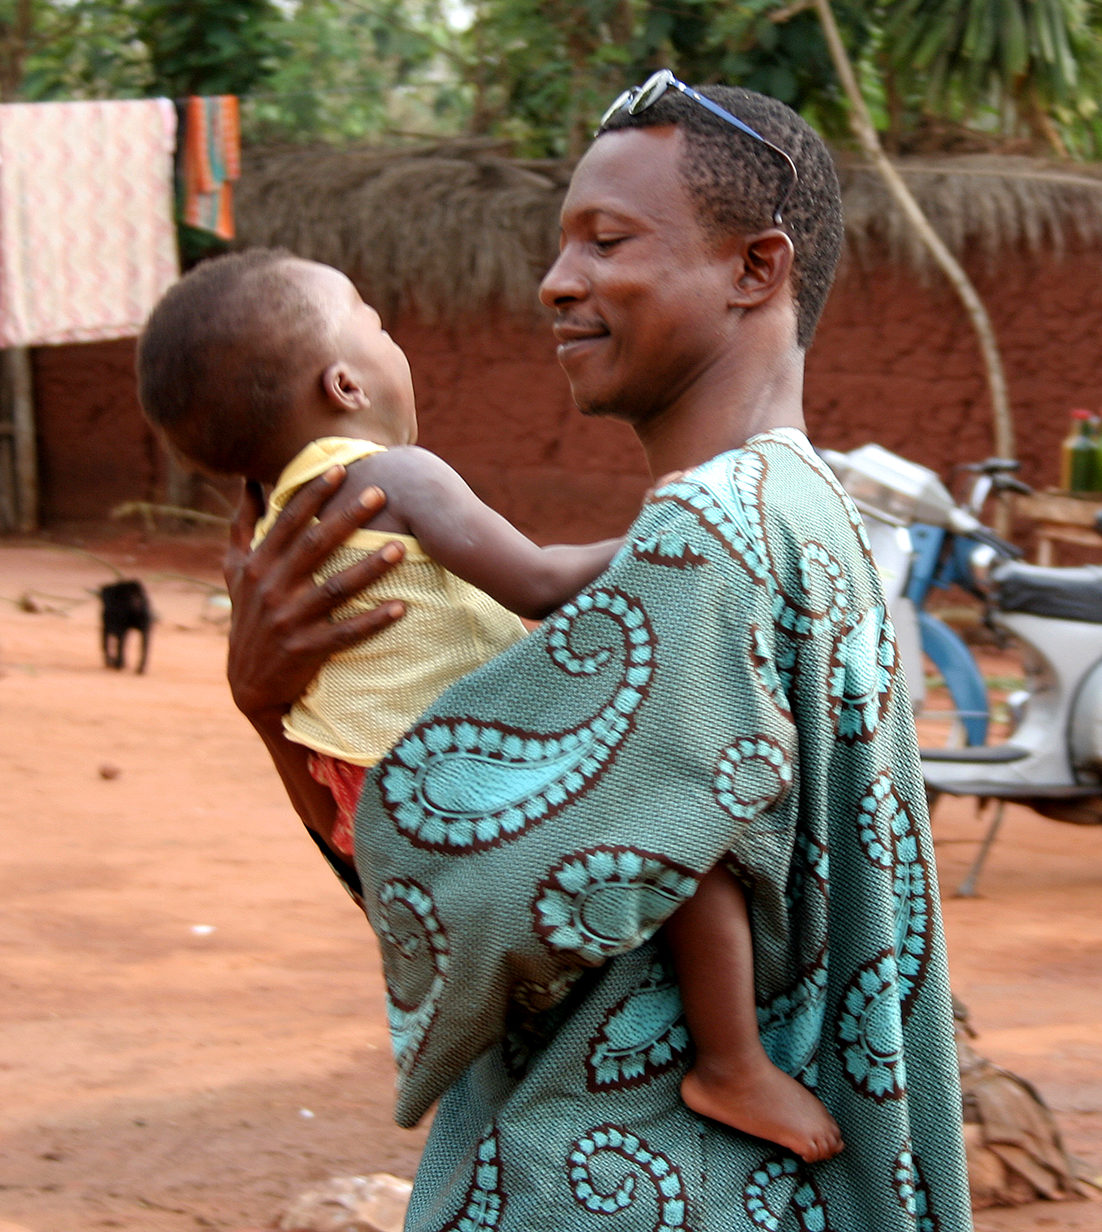 African man holding baby